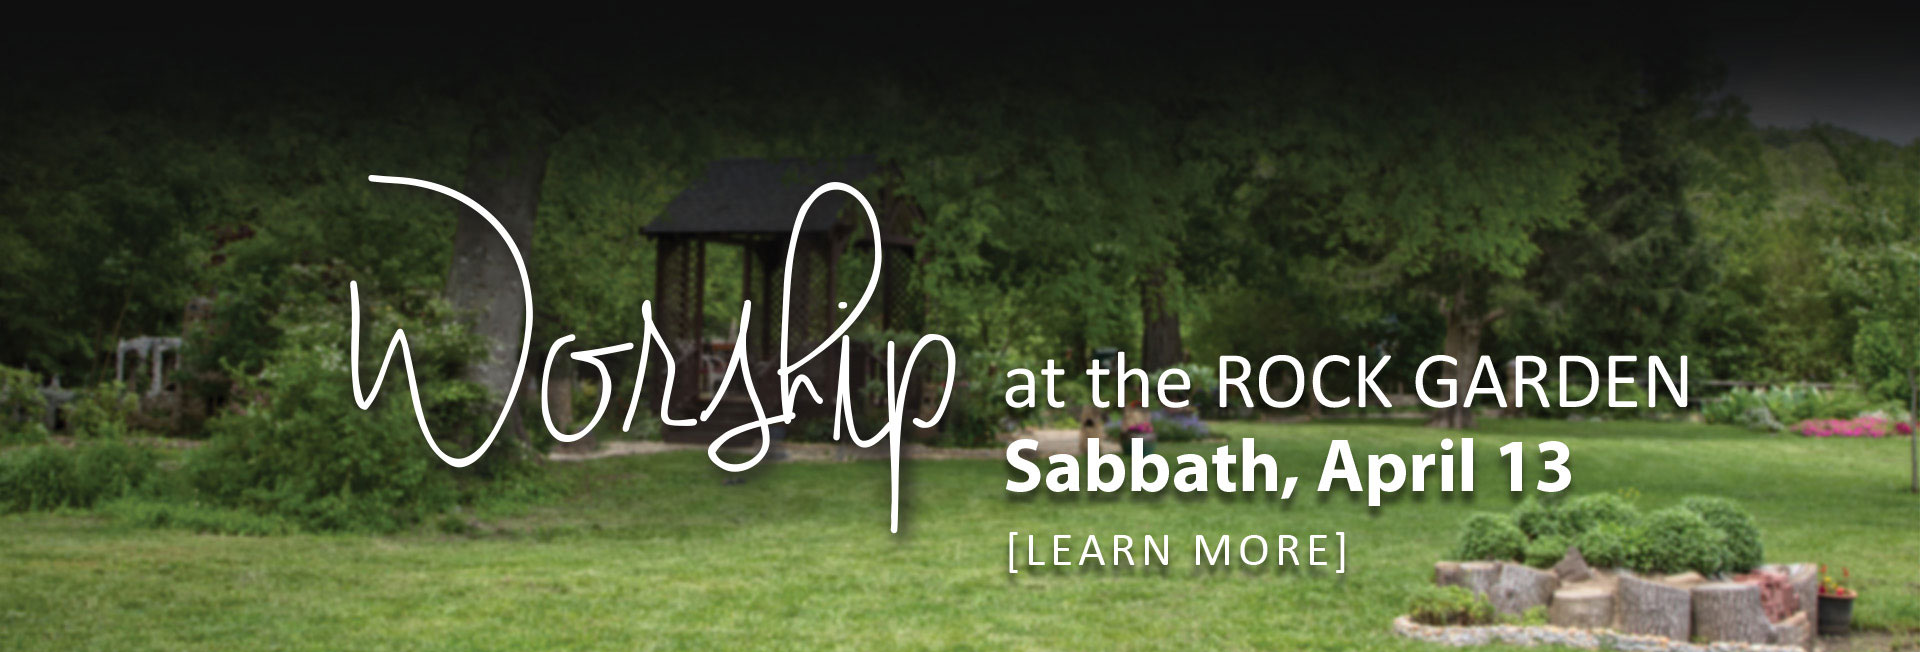 Worship at the Rock Garden April 13 10am